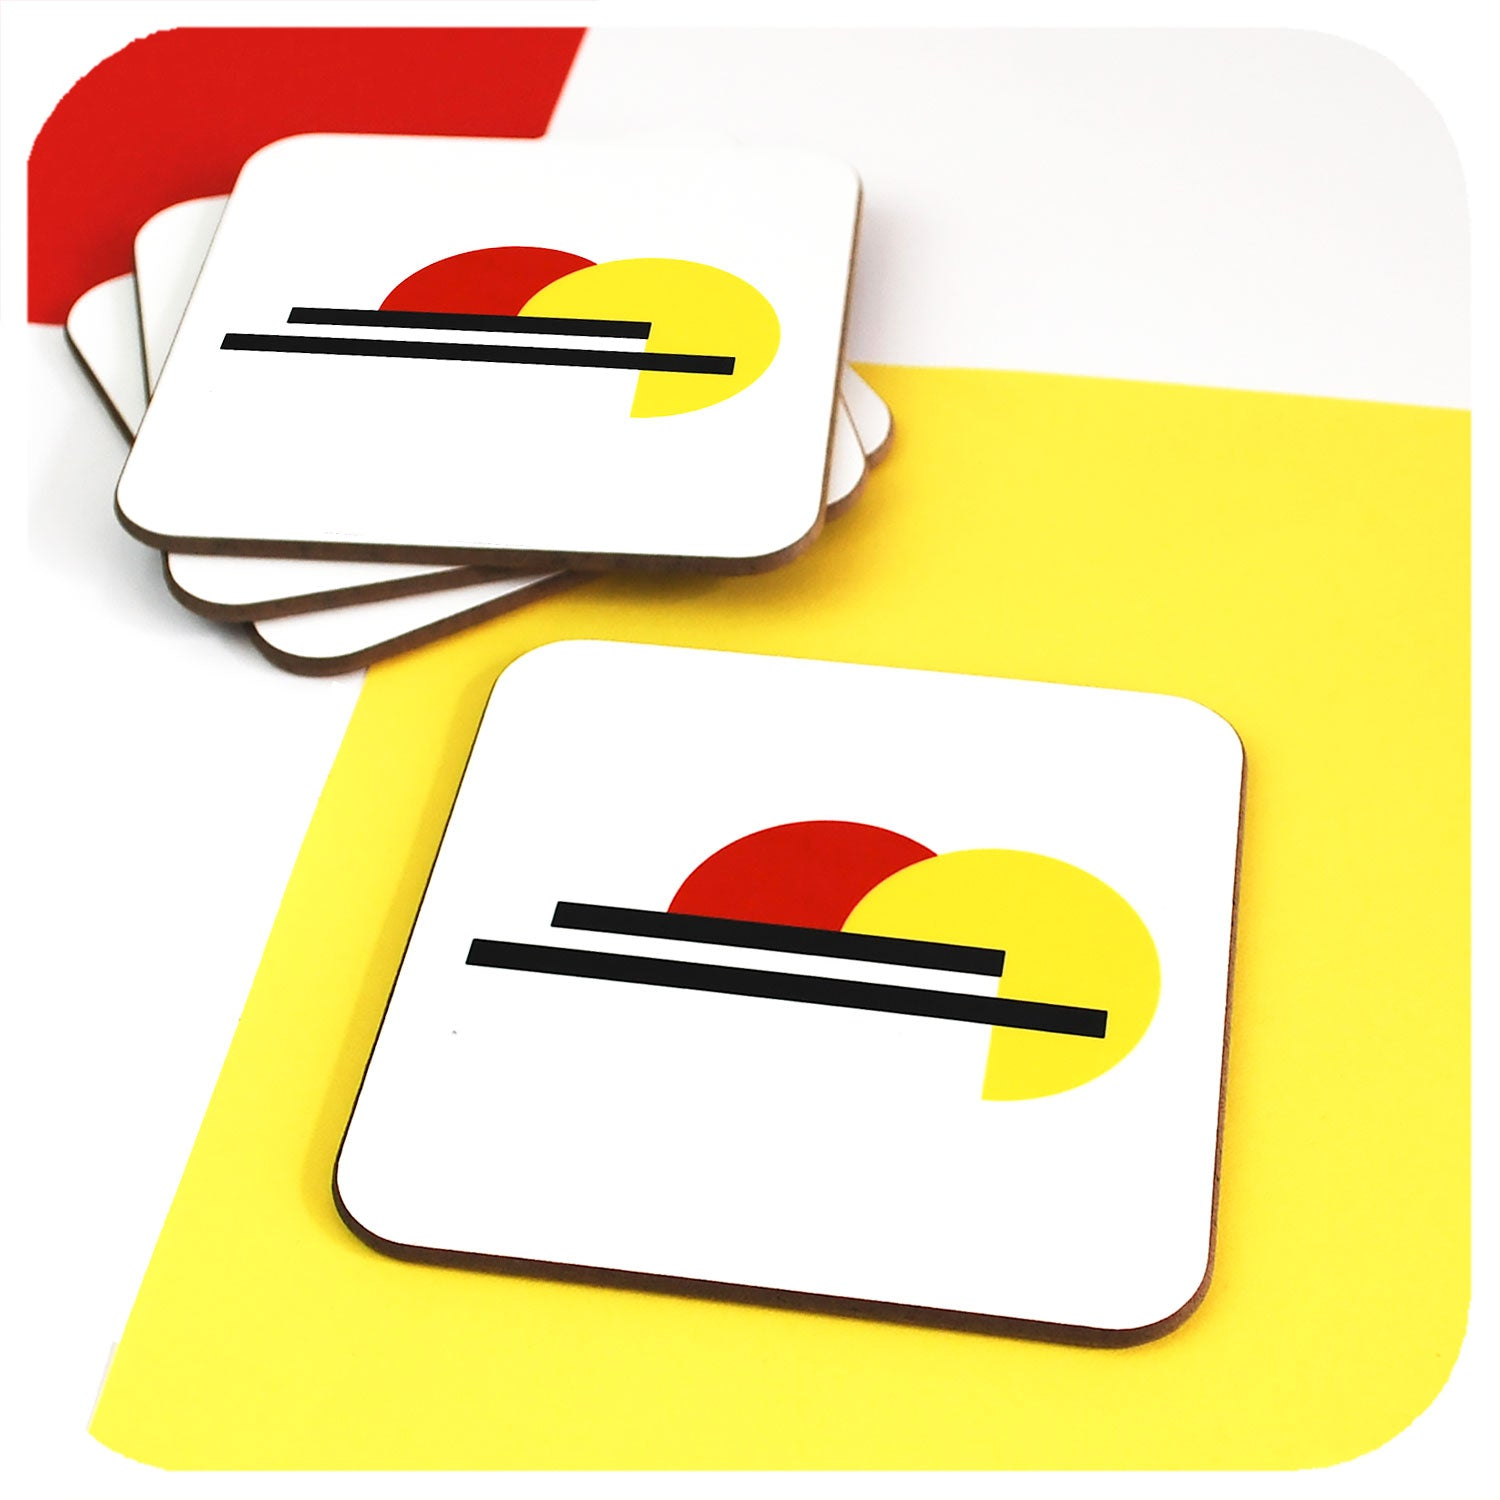 Bauhaus Coasters, set of 4, with one coaster set forward | The Inkabilly Emporium